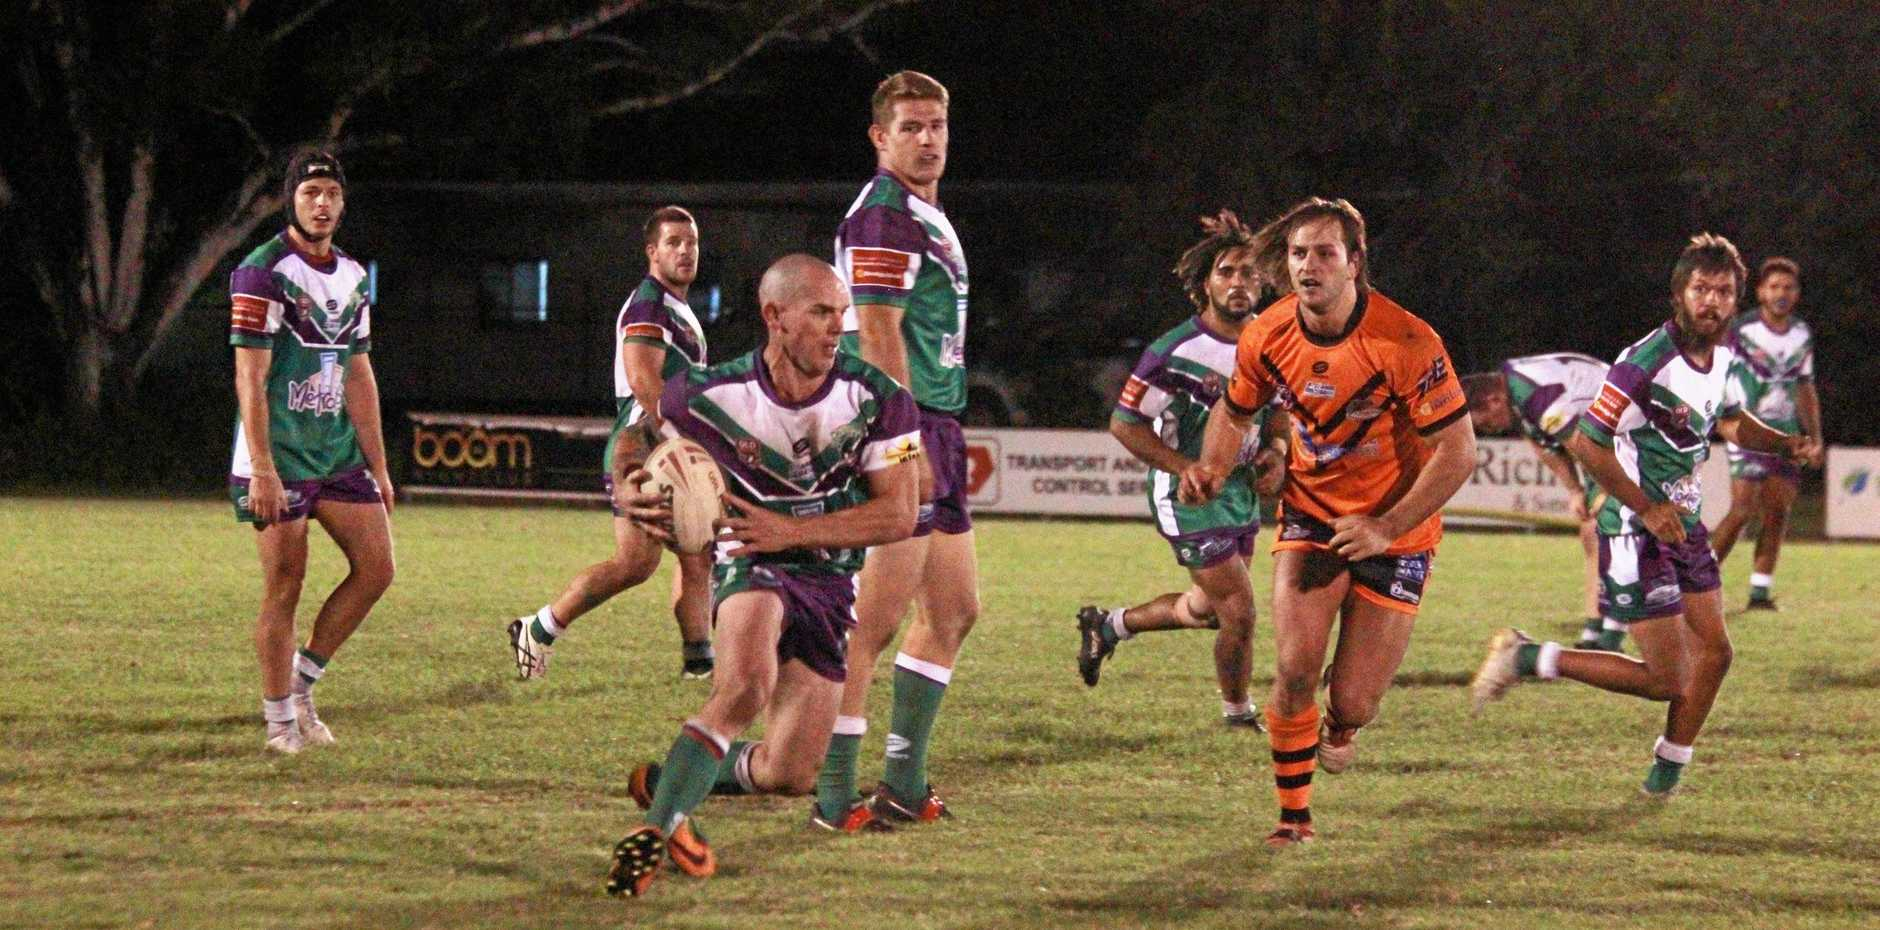 ON THE MOVE: Whitsunday Brahmans hooker Clint Broomham darts out of dummy-half in last Saturday's win against Wests at Les Stagg Oval.